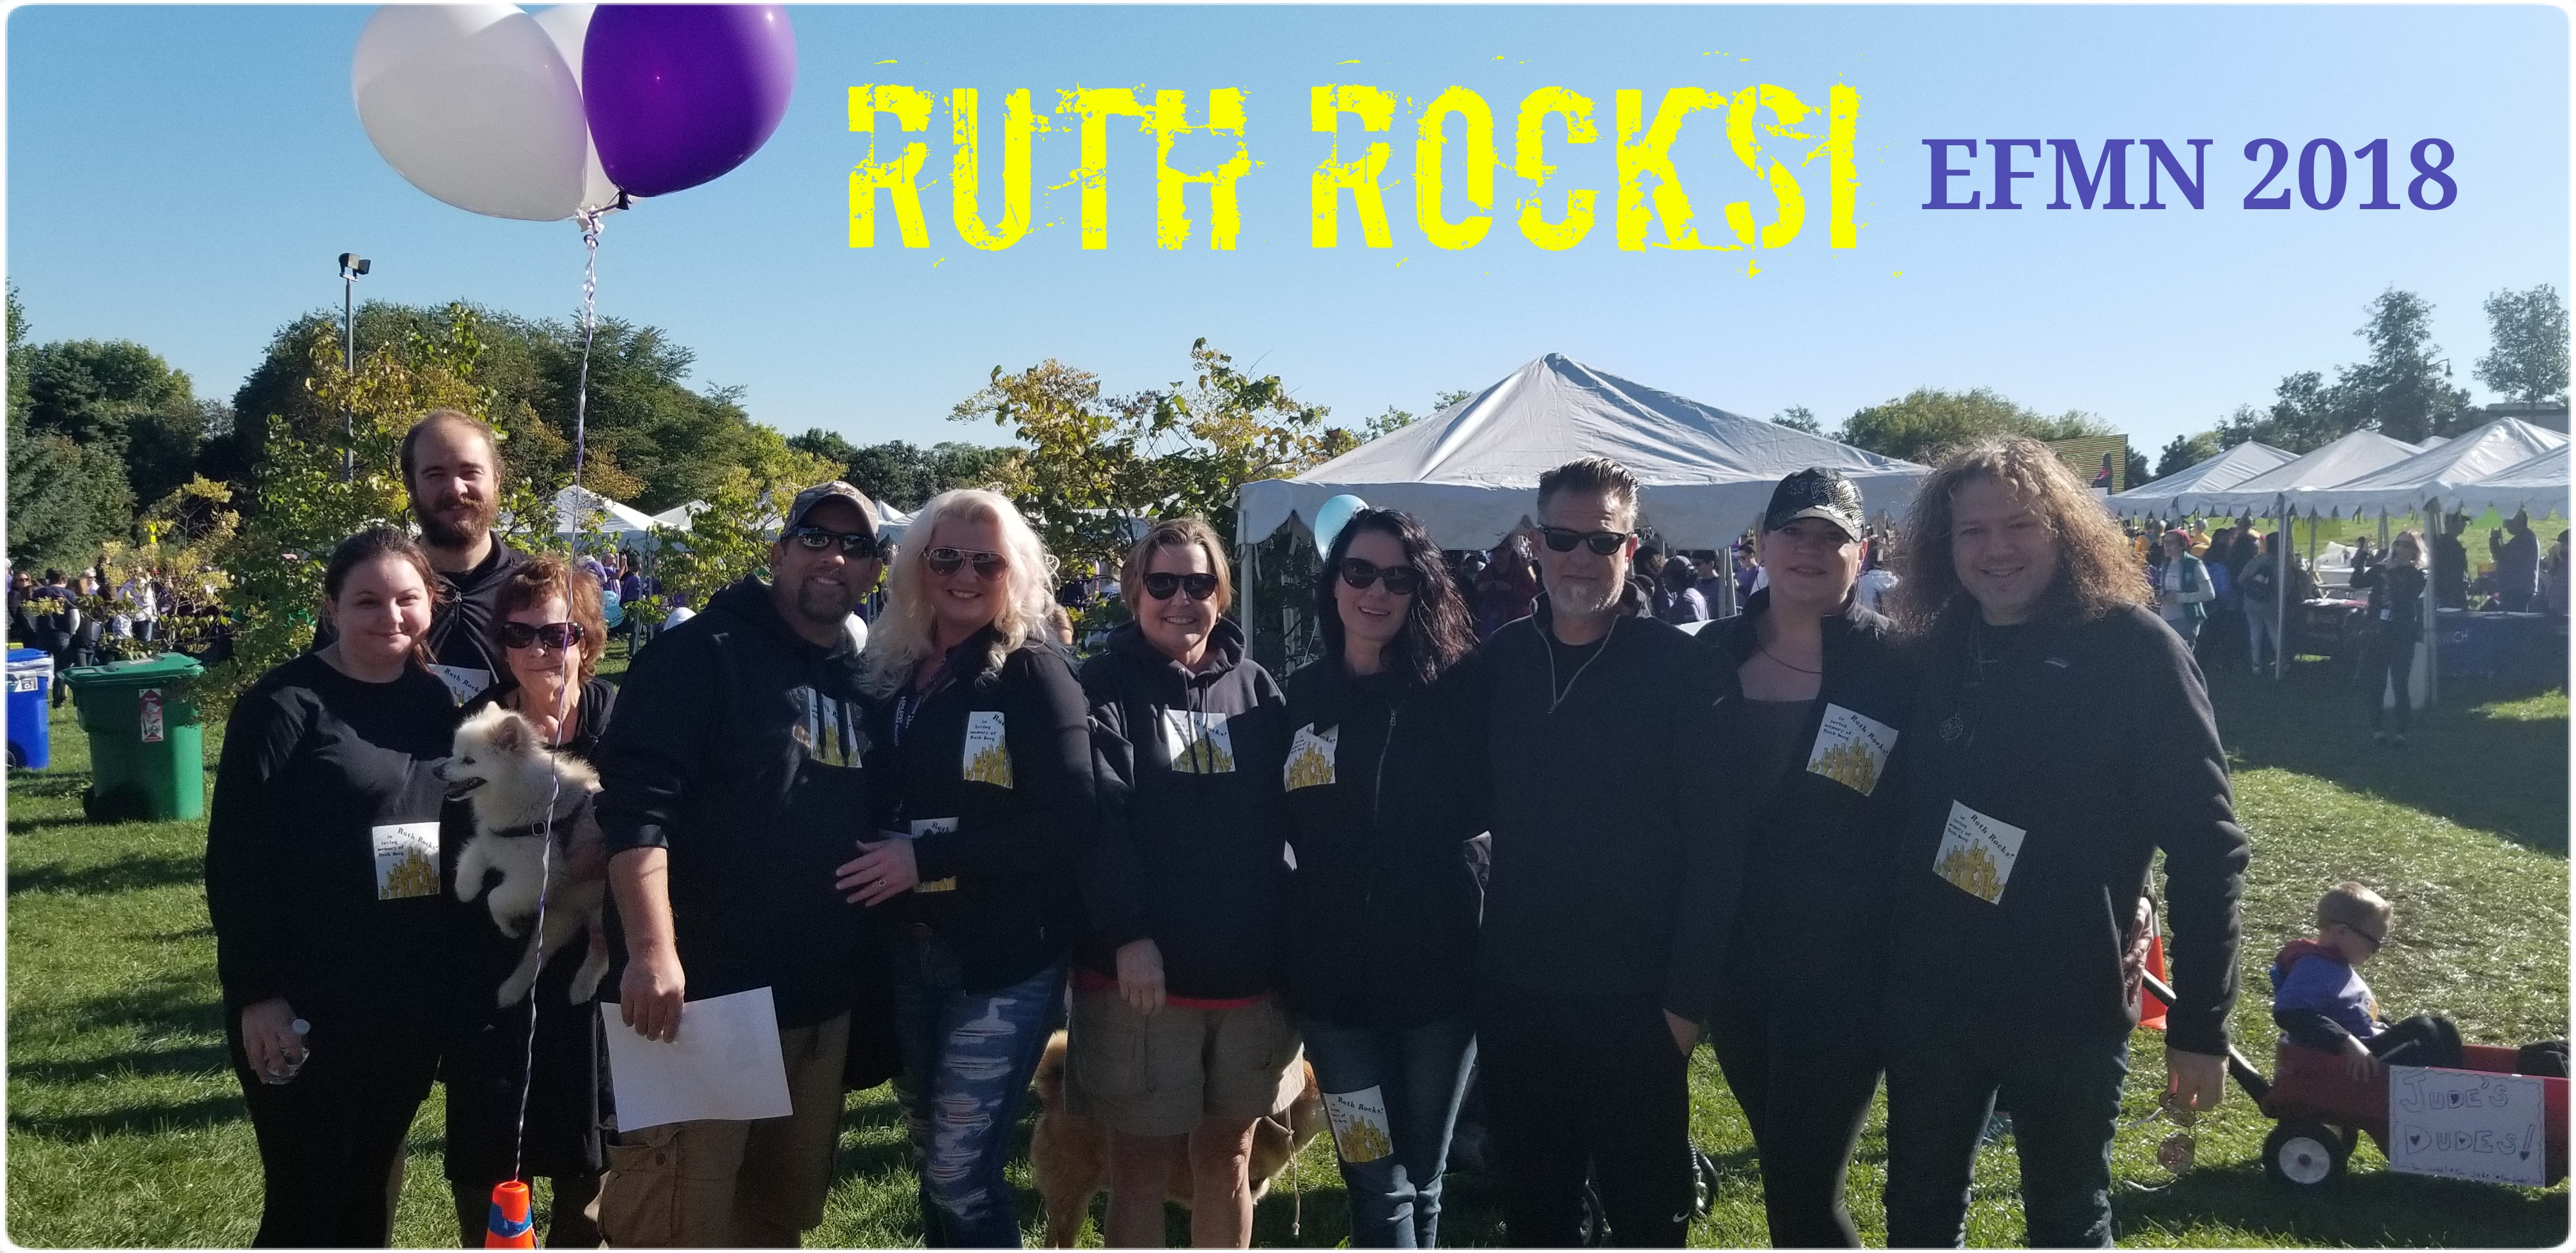 Team Ruth Rocks! 2018